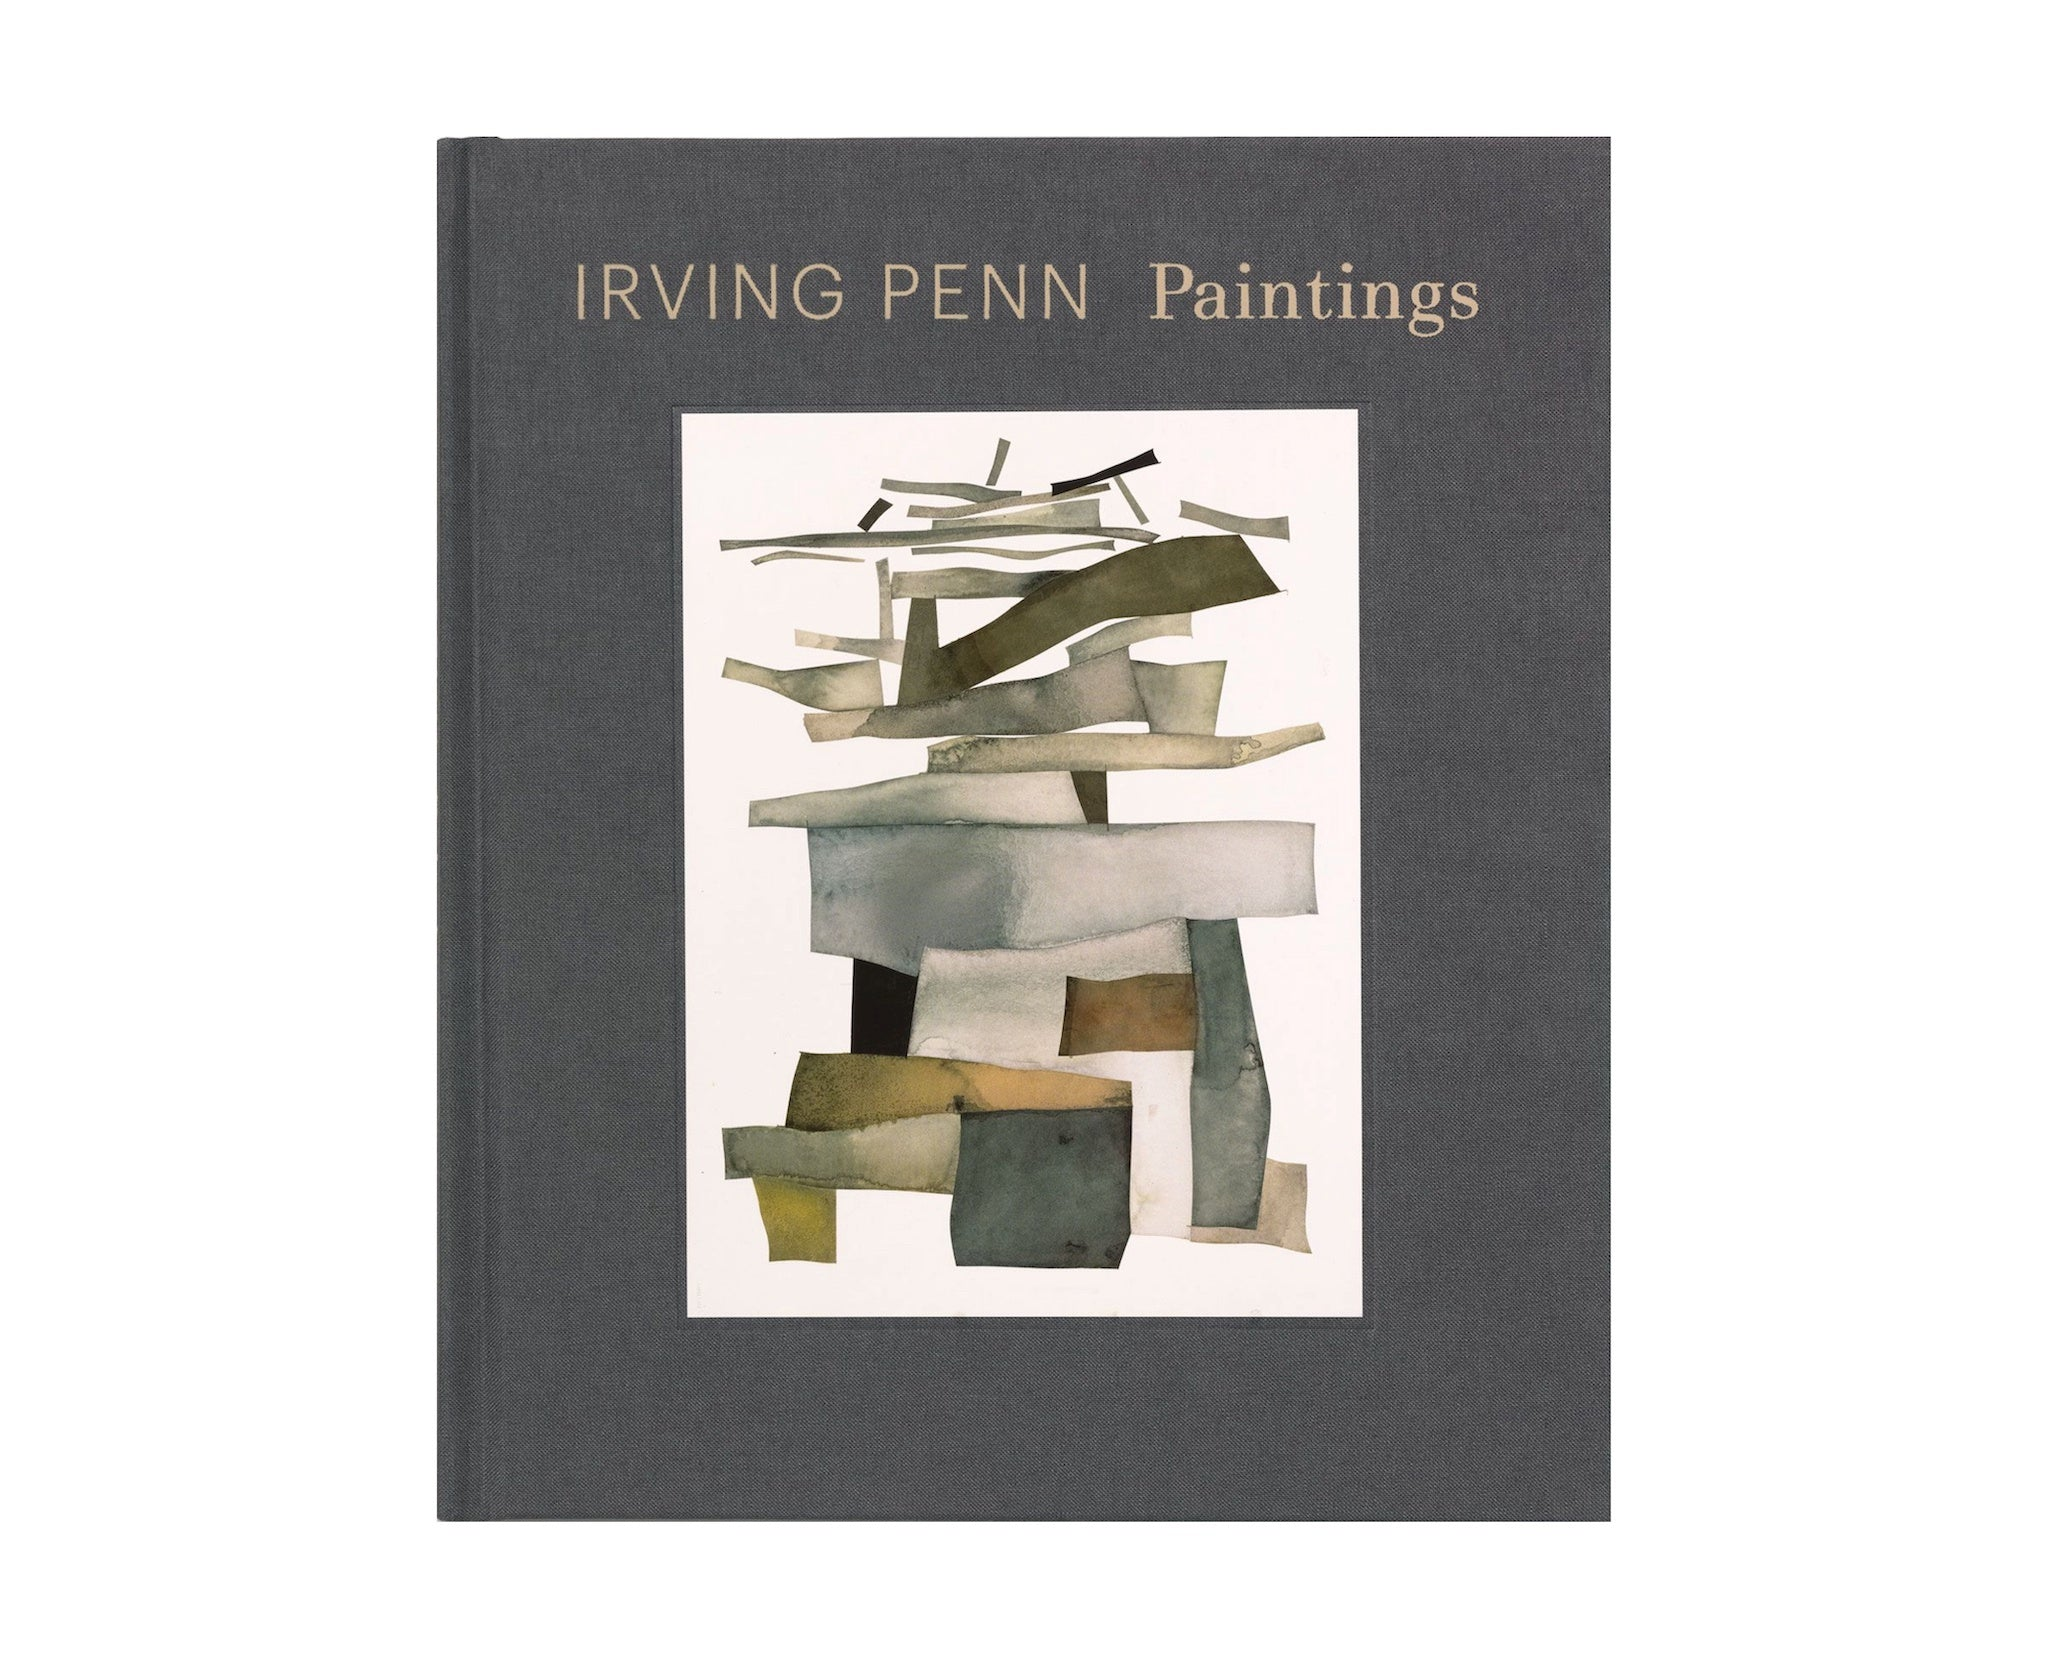 Books Irving Penn: Paintings